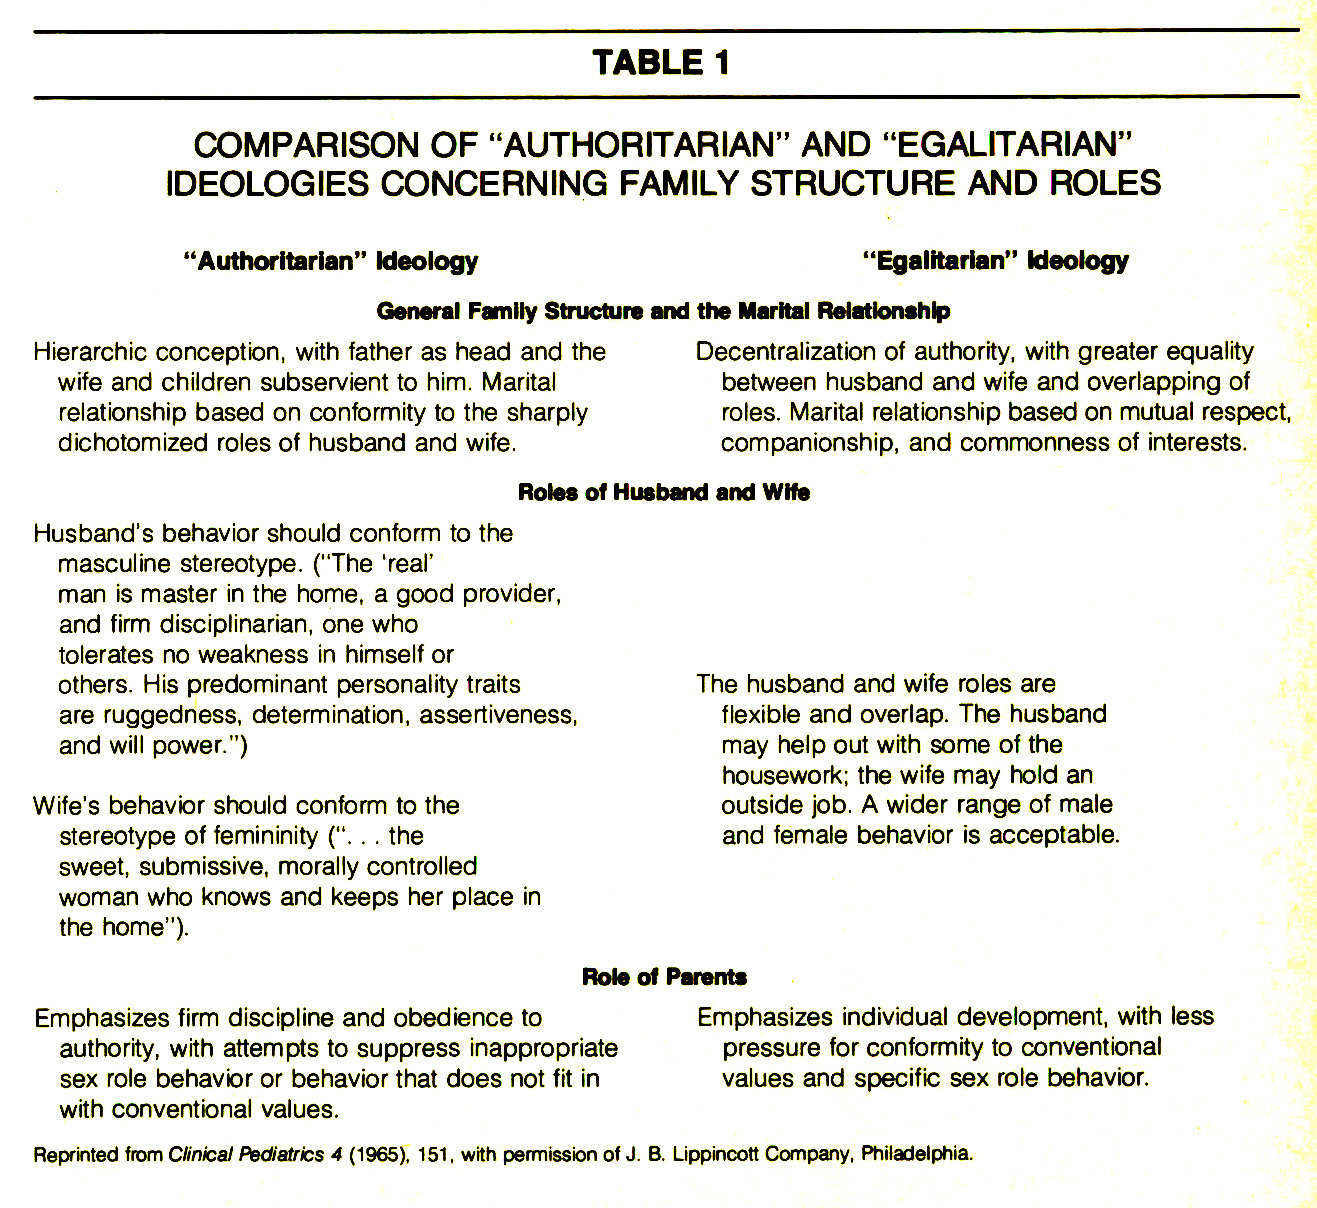 """TABLE 1COMPARISON OF """"AUTHORITARIAN"""" AND """"EGALITARIAN"""" IDEOLOGIES CONCERNING FAMILY STRUCTURE AND ROLES"""